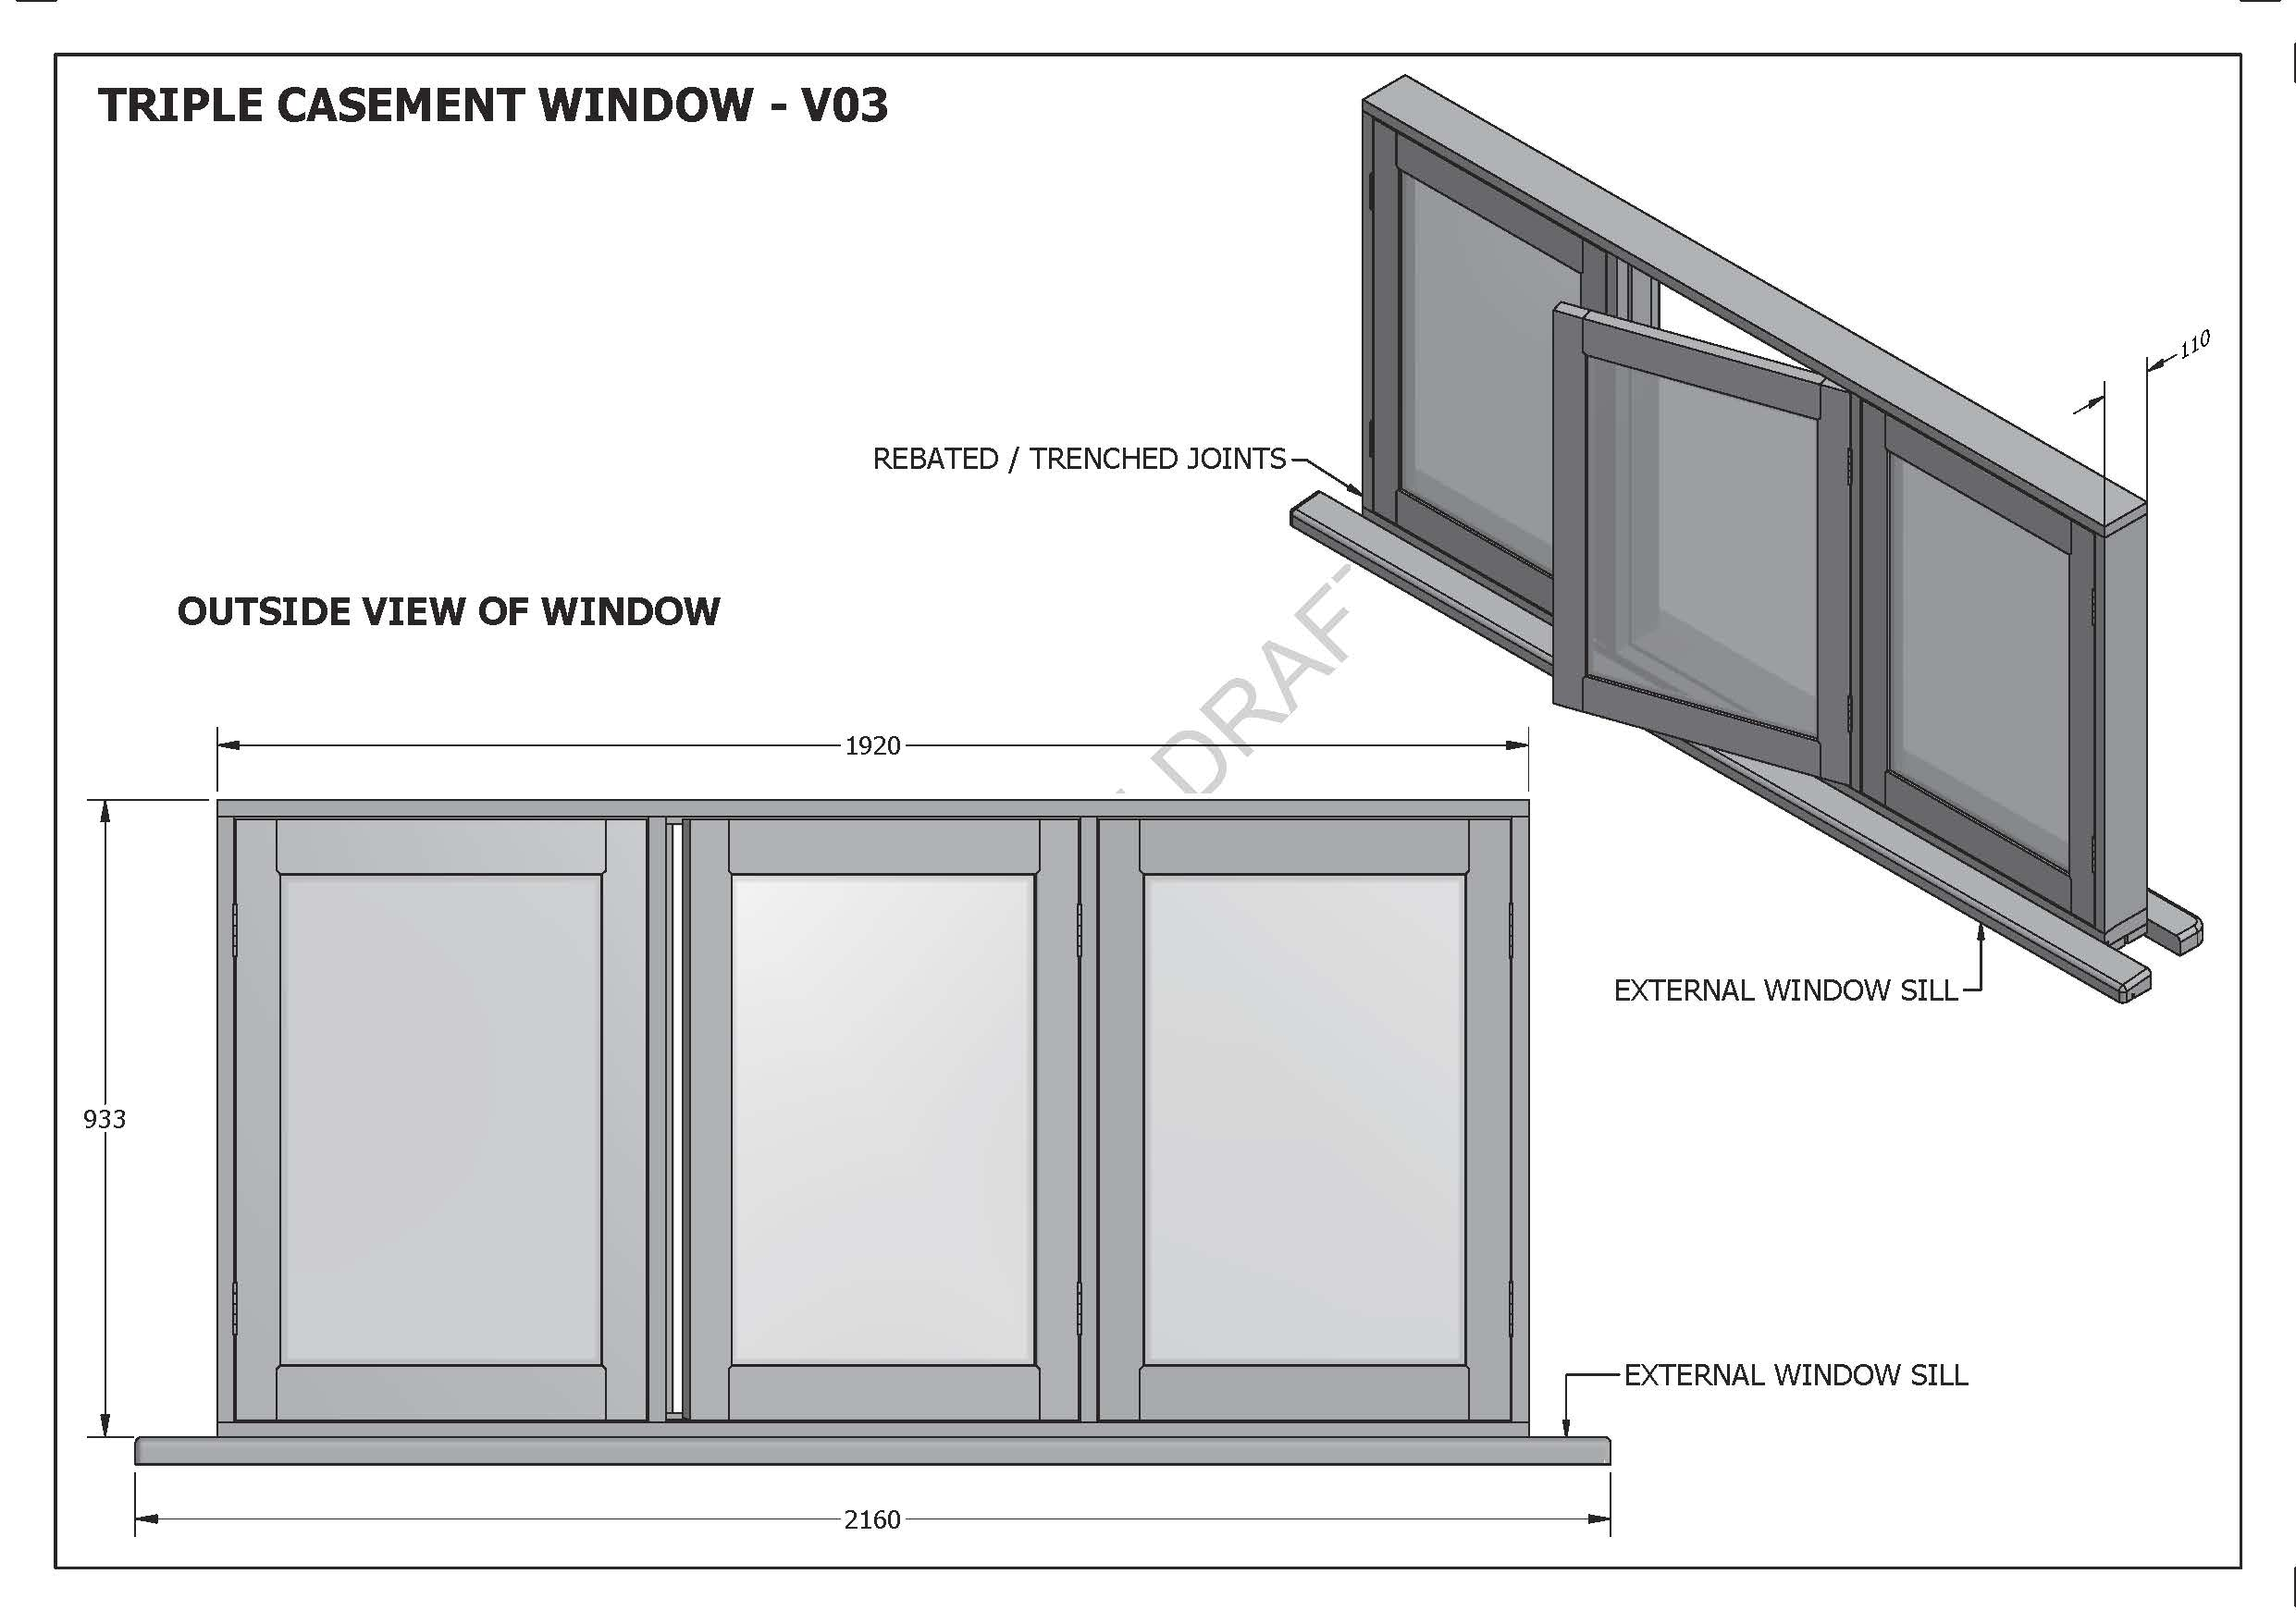 TRIPLE CASEMENT WINDOWS V01 - Build your own and SAVE BIG $$$